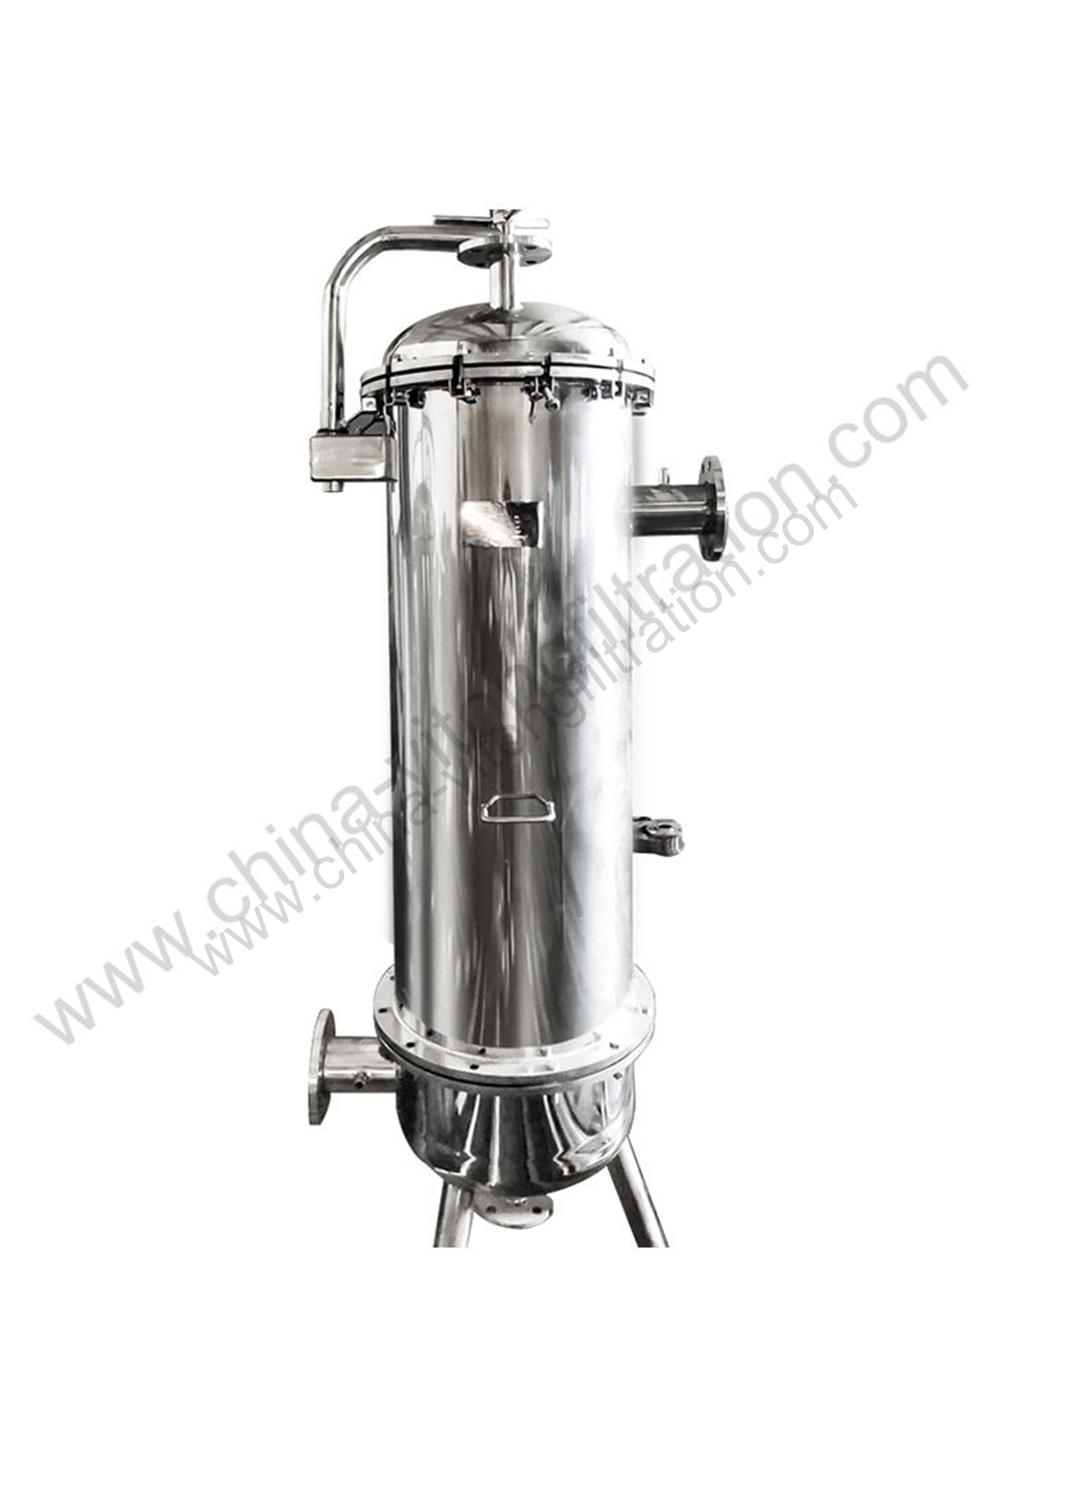 High Flow Rate Filter Housing